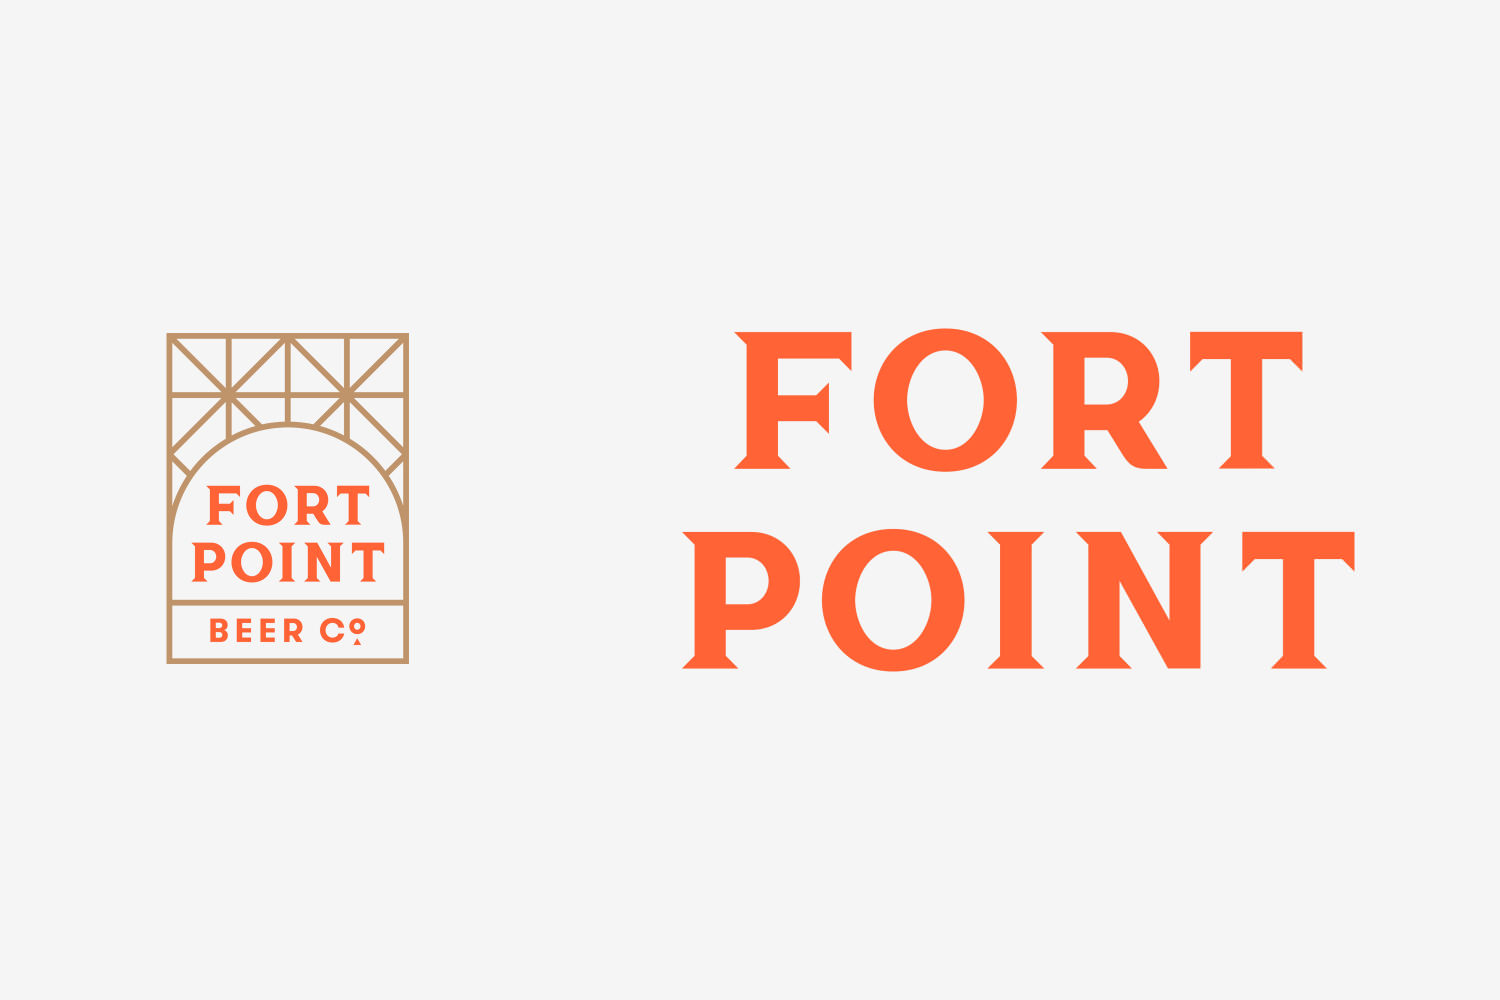 Brand identity for Fort Point Beer Co. by San Francisco based graphic design studio Manual